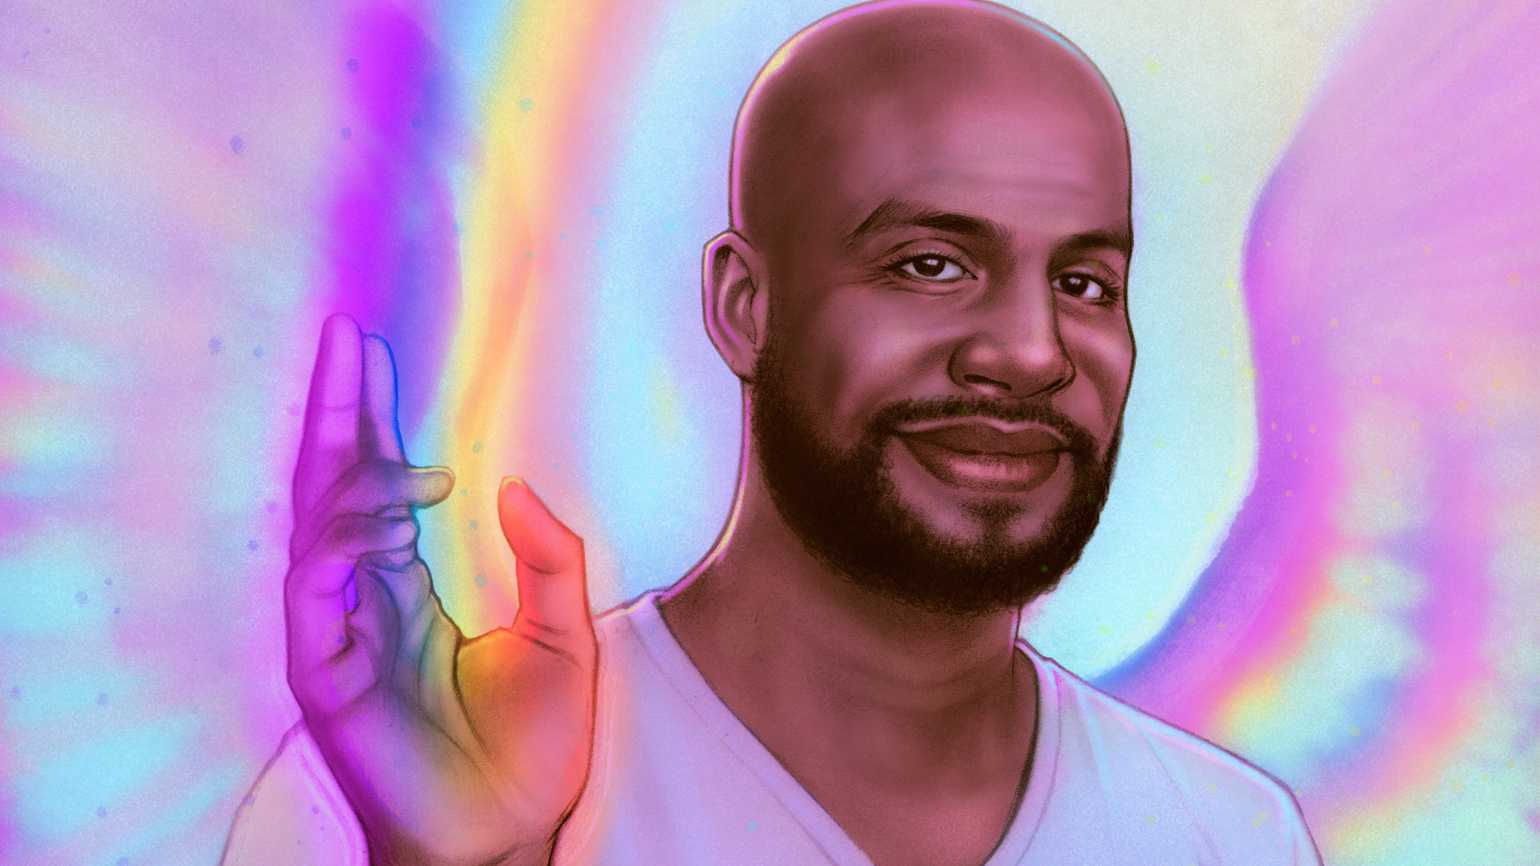 An angelic man with rainbows emitting from his hands.